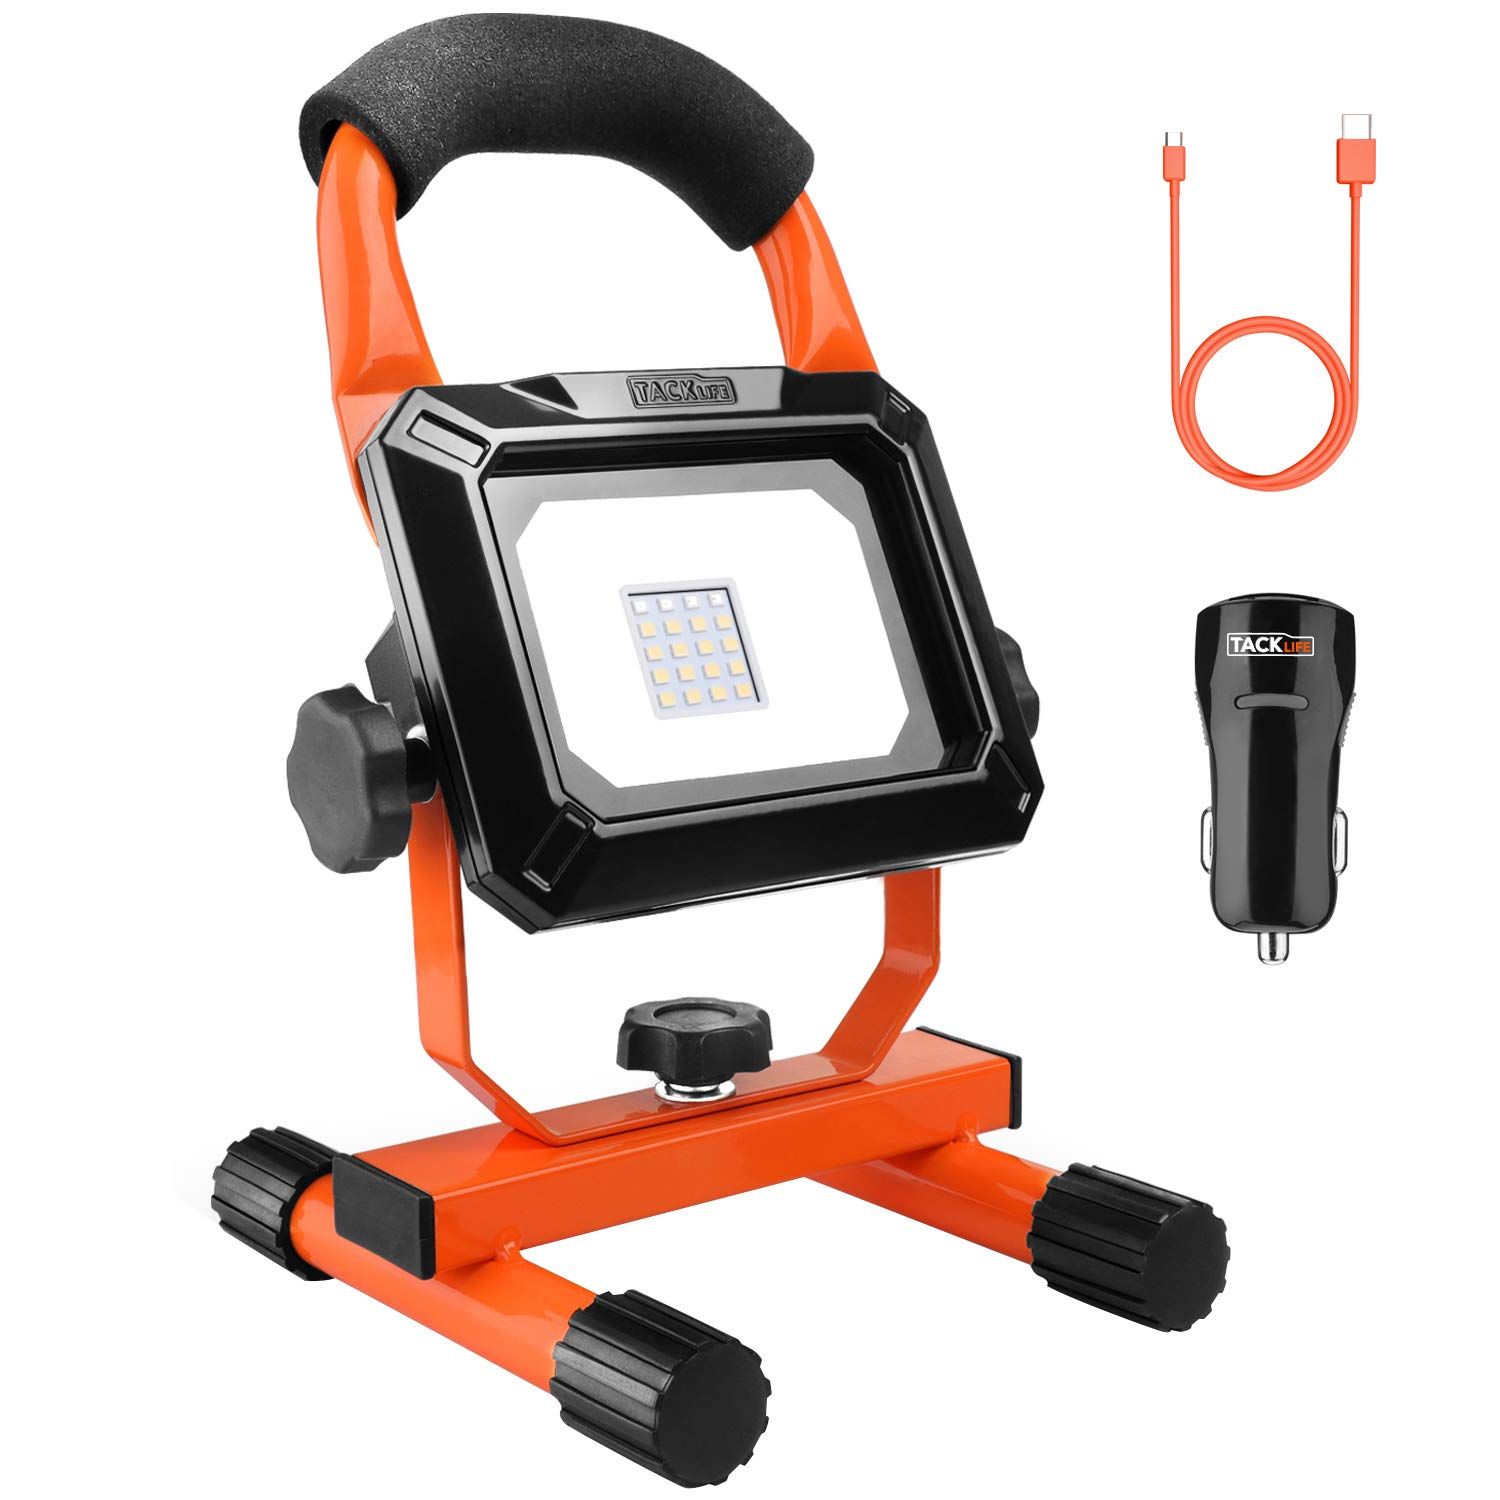 Tacklife 15W Rechargeable LED Work Light, Spotlights, Camping Lights, 4400mAh Lithium Batteries Built-in, with USB Ports to Charge Mobile Devices and Special SOS Modes, Free Car Charger - LWL1B